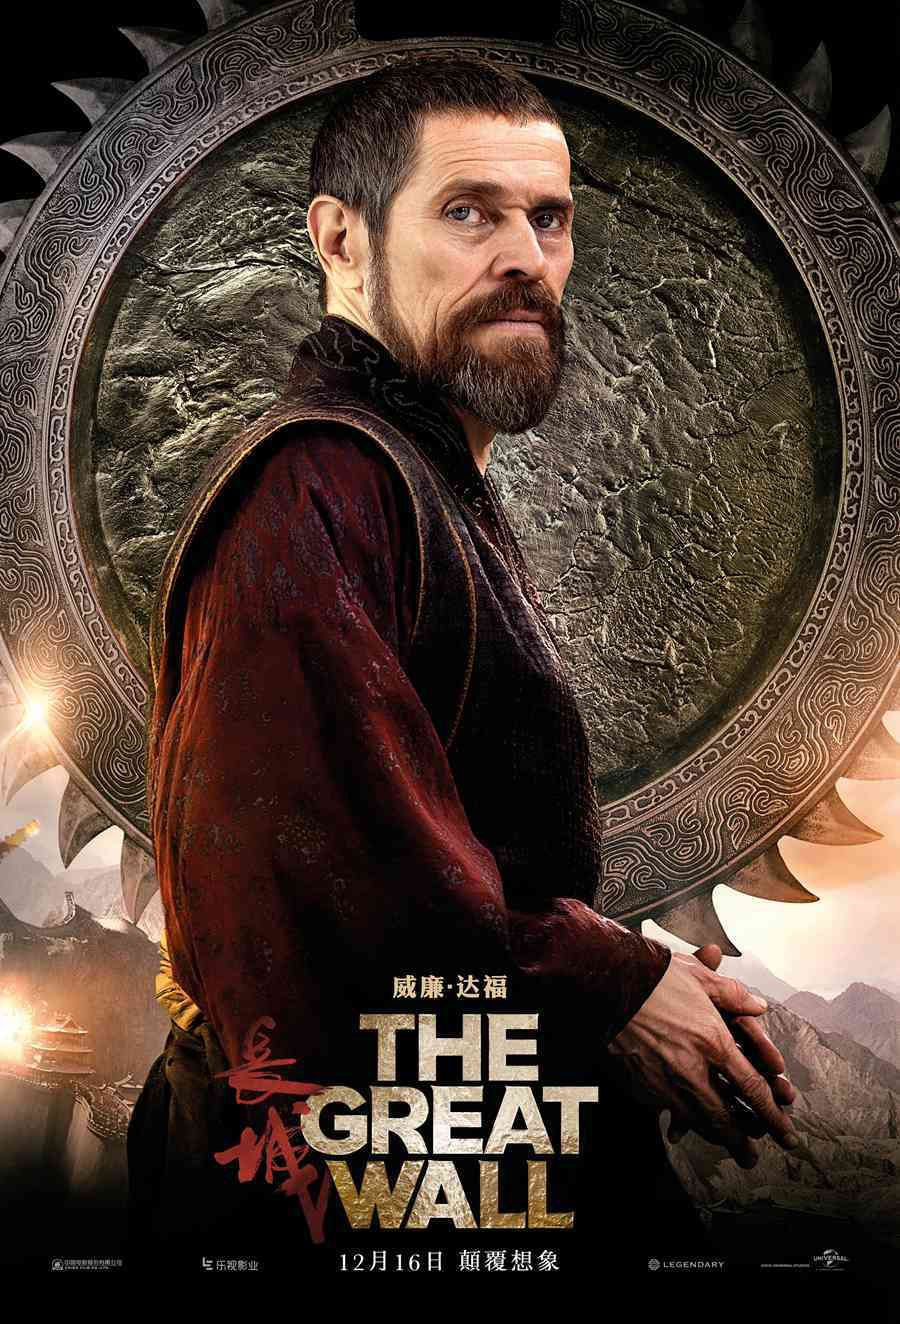 The Great Wall - film poster - Willem Dafoe